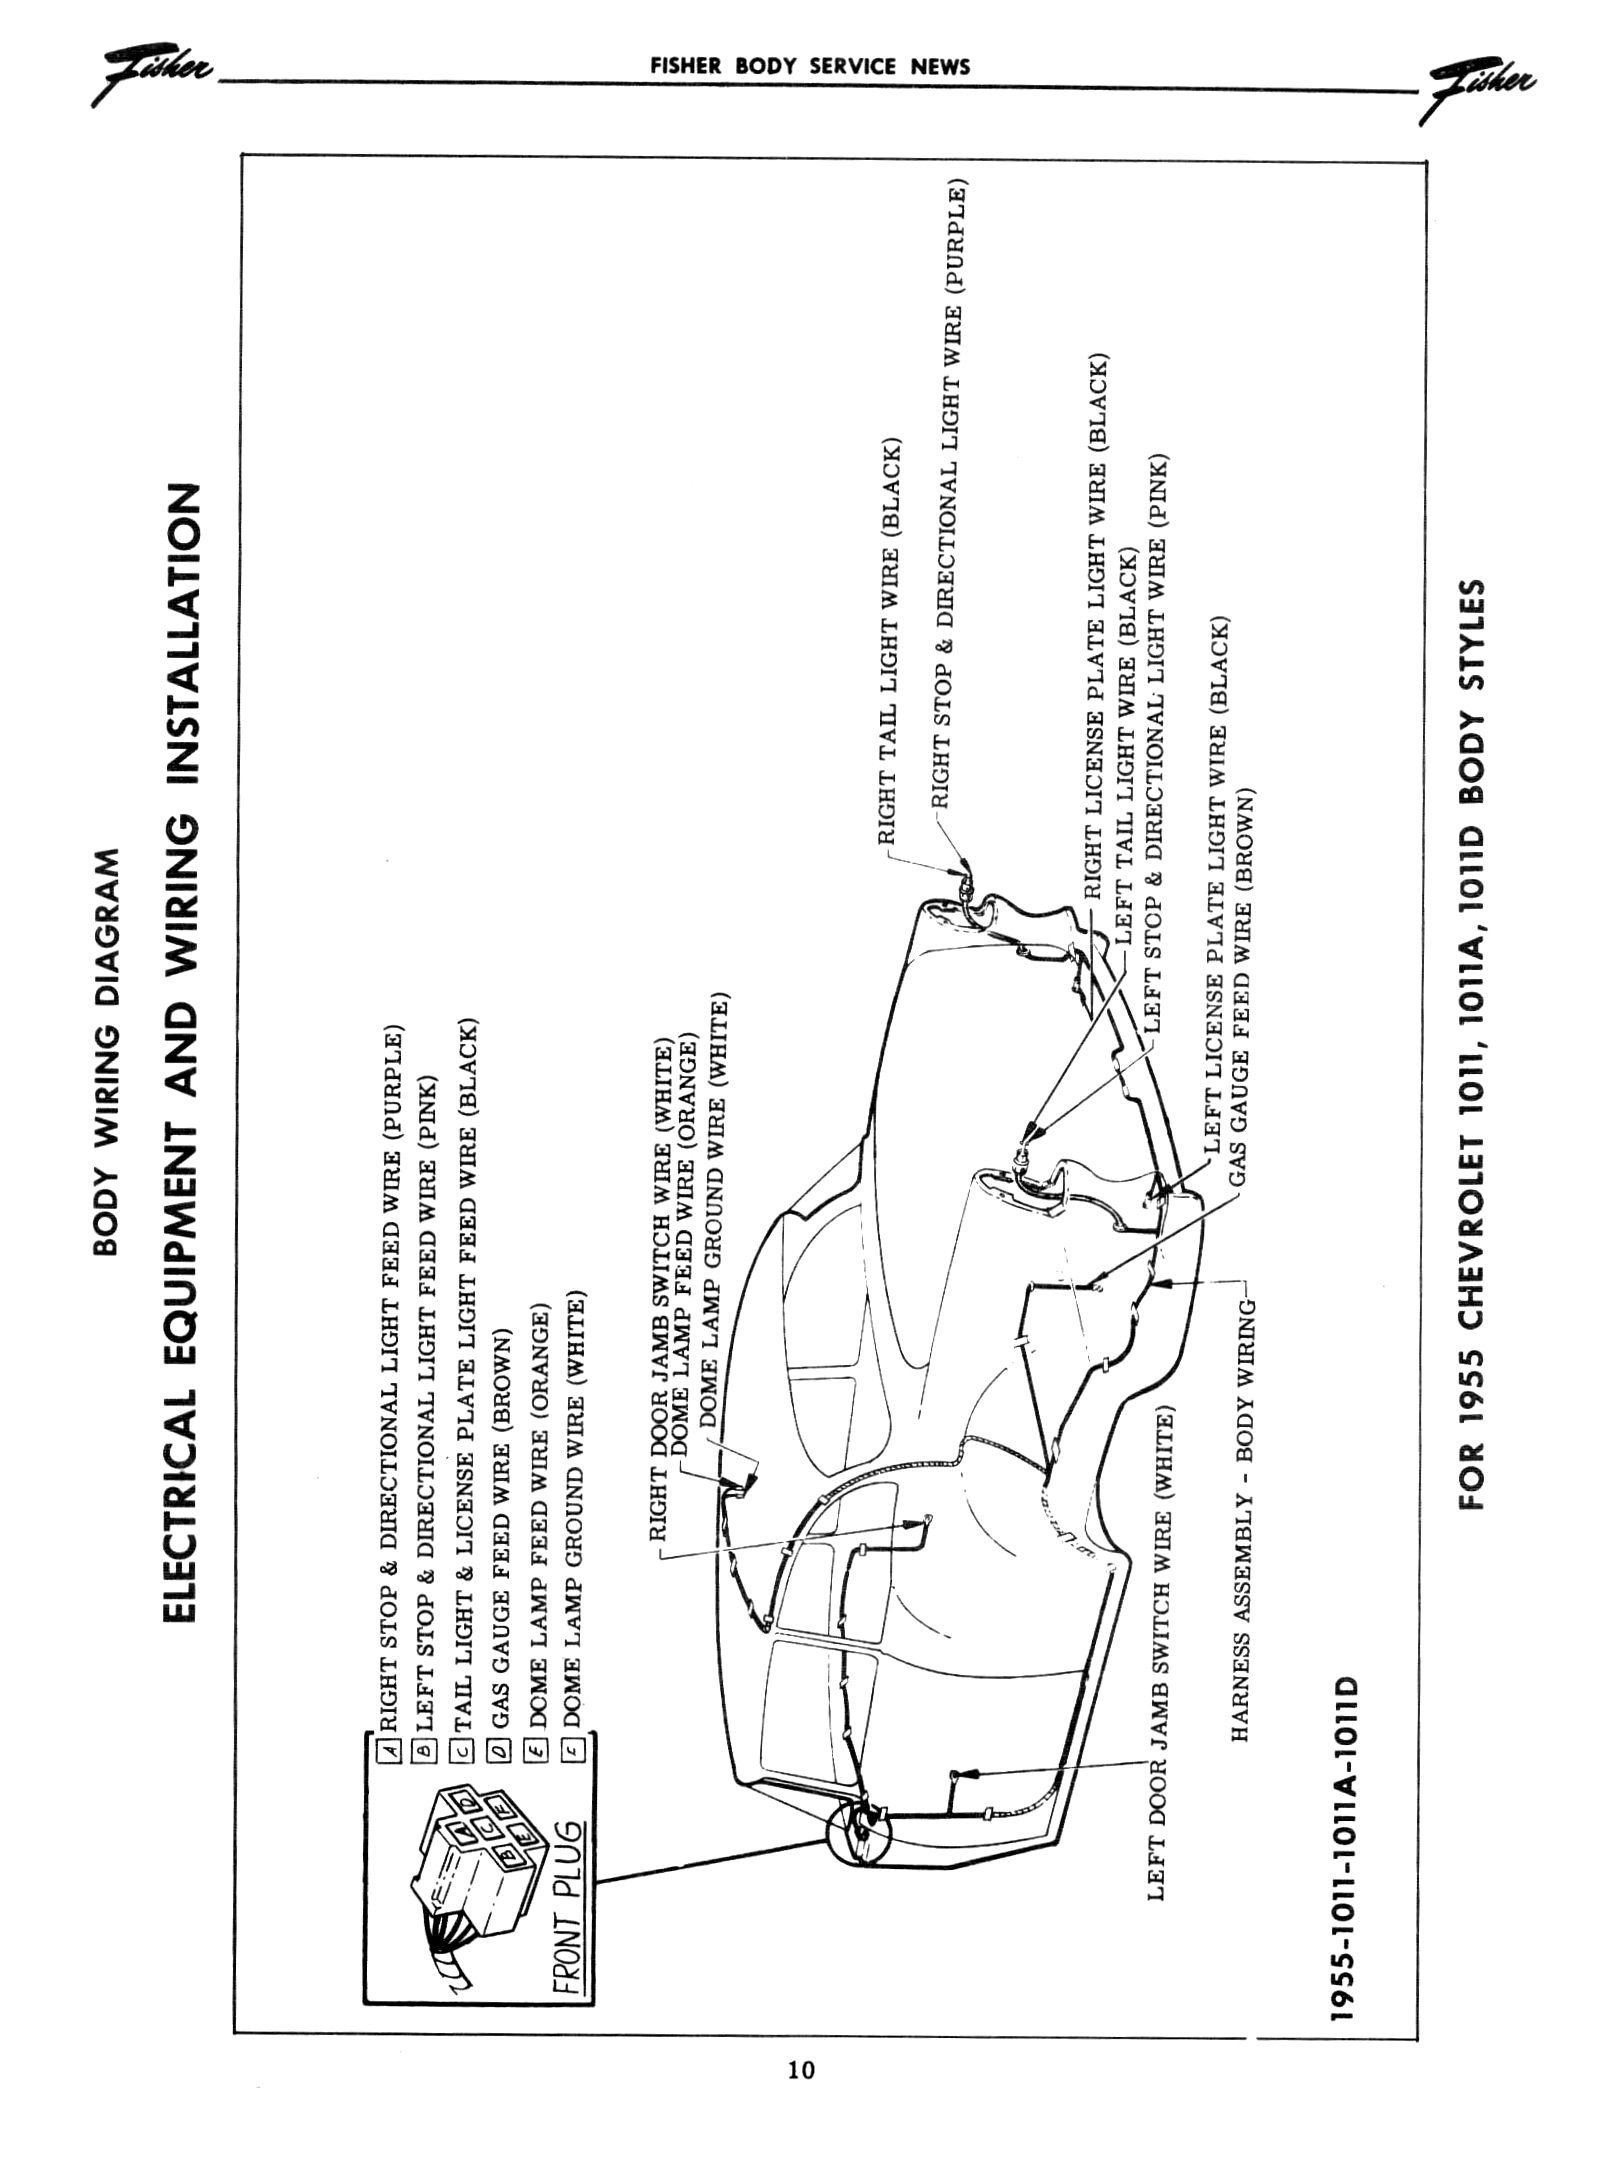 ford dome light wiring diagram best part of wiring diagramchevy dome light wiring wiring diagramdome light wire diagram wiring library1955 body wiring diagram chevy